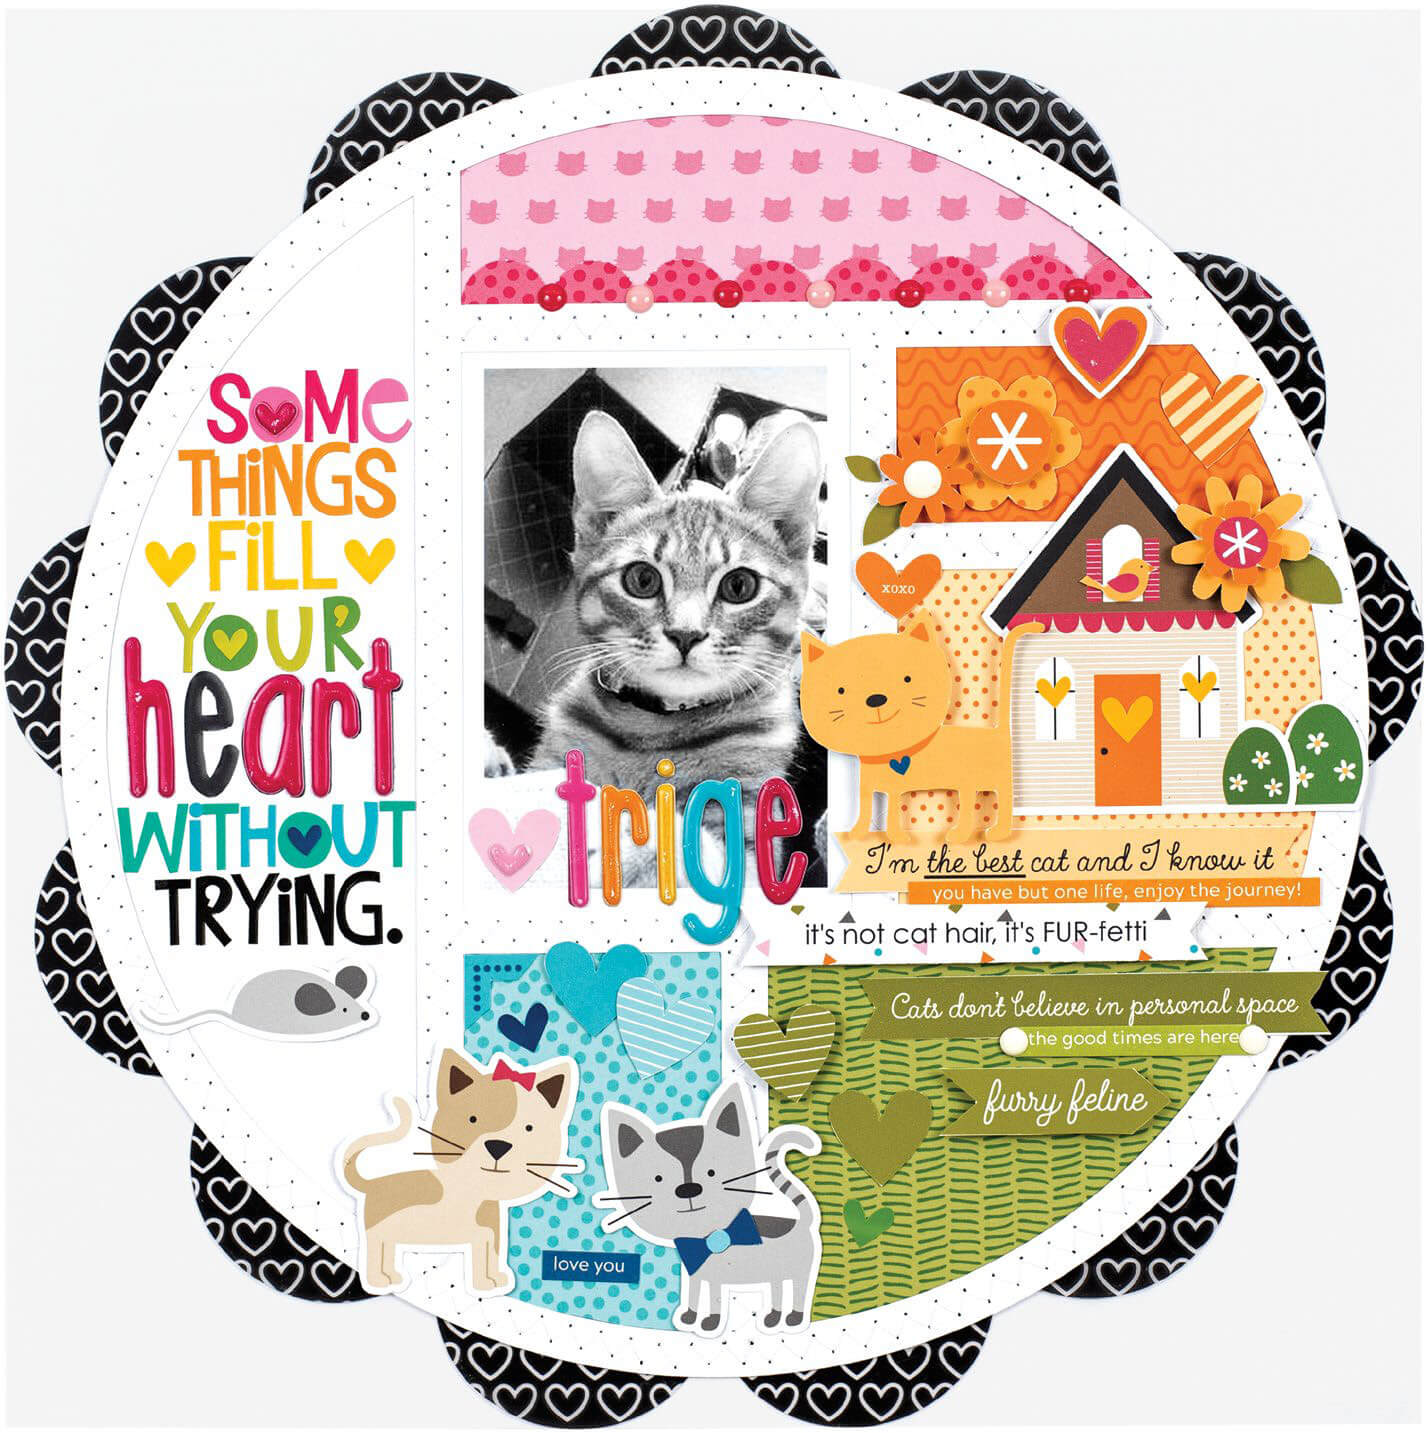 Scrapbook & Cards Today - Spring 2020 - Some Things Fill Your Heart Without Trying by Stephanie Buice